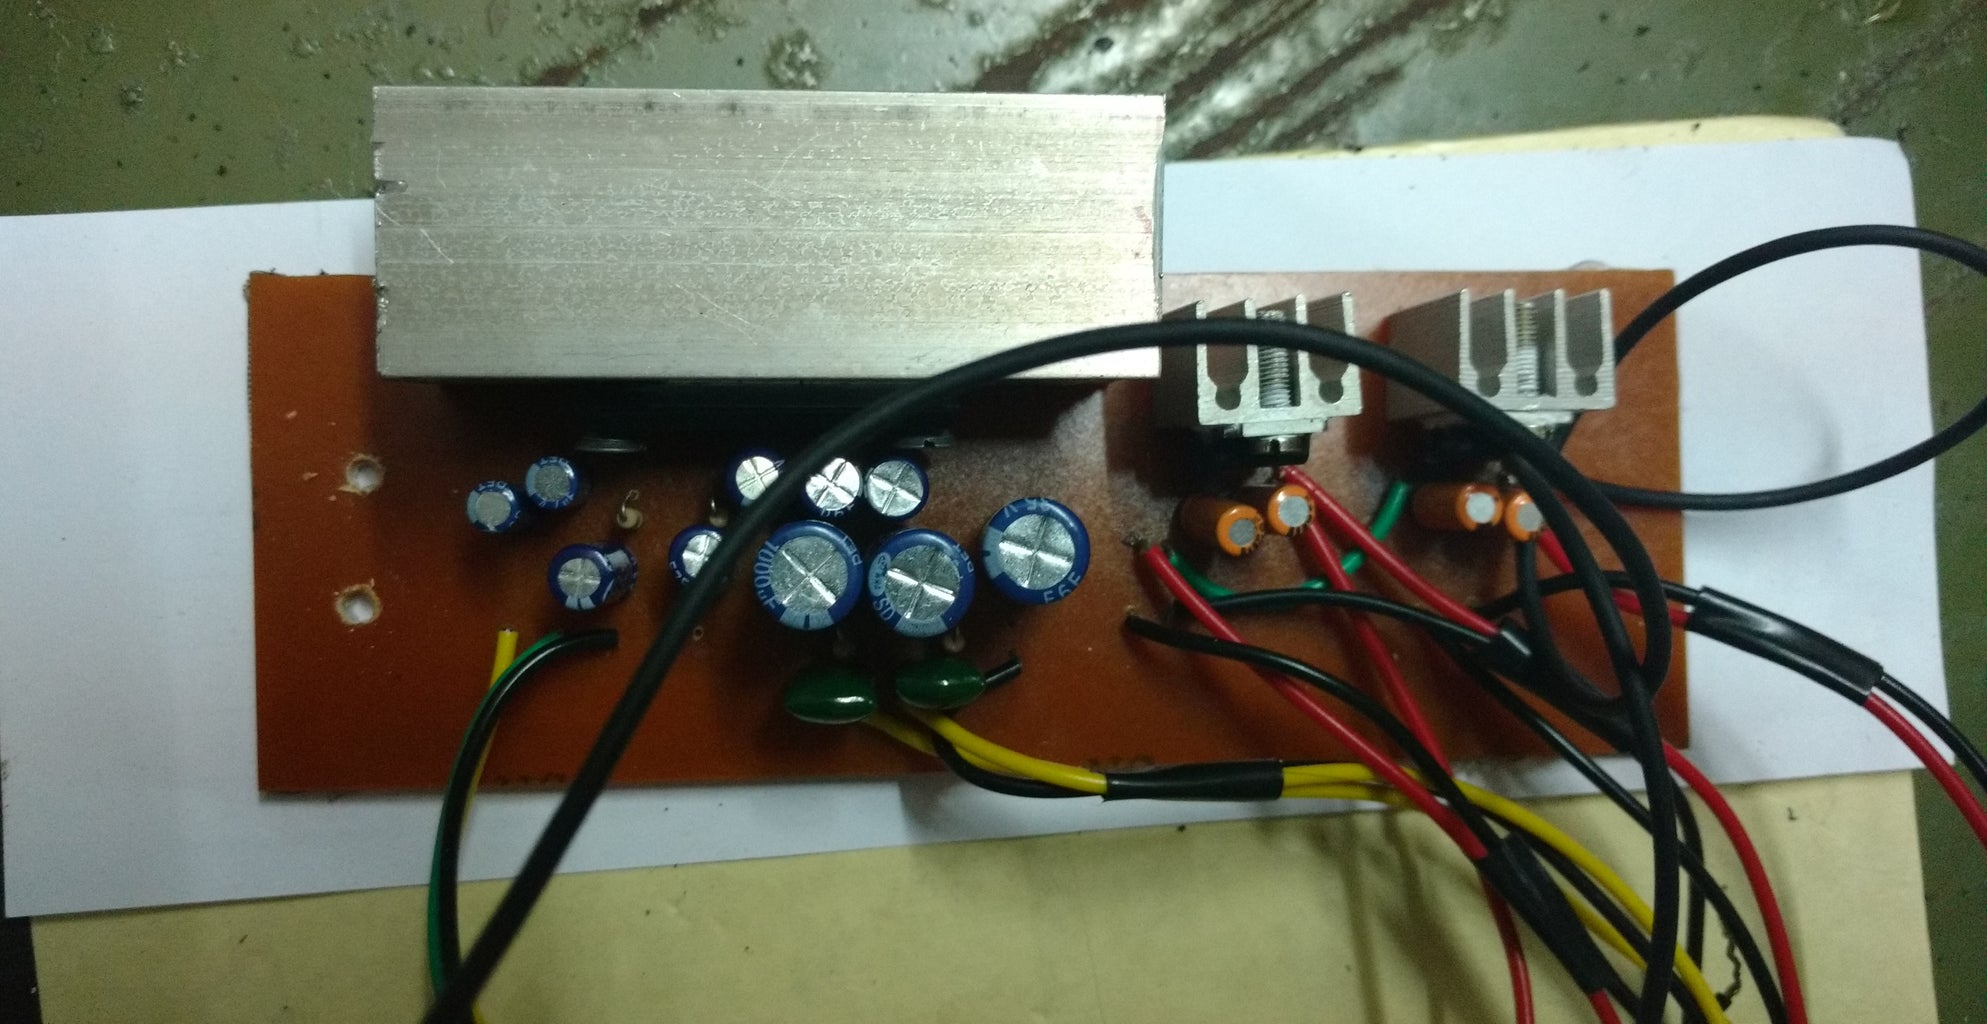 The Amplifier Unit Along With 7805 & 7812 Regulator IC